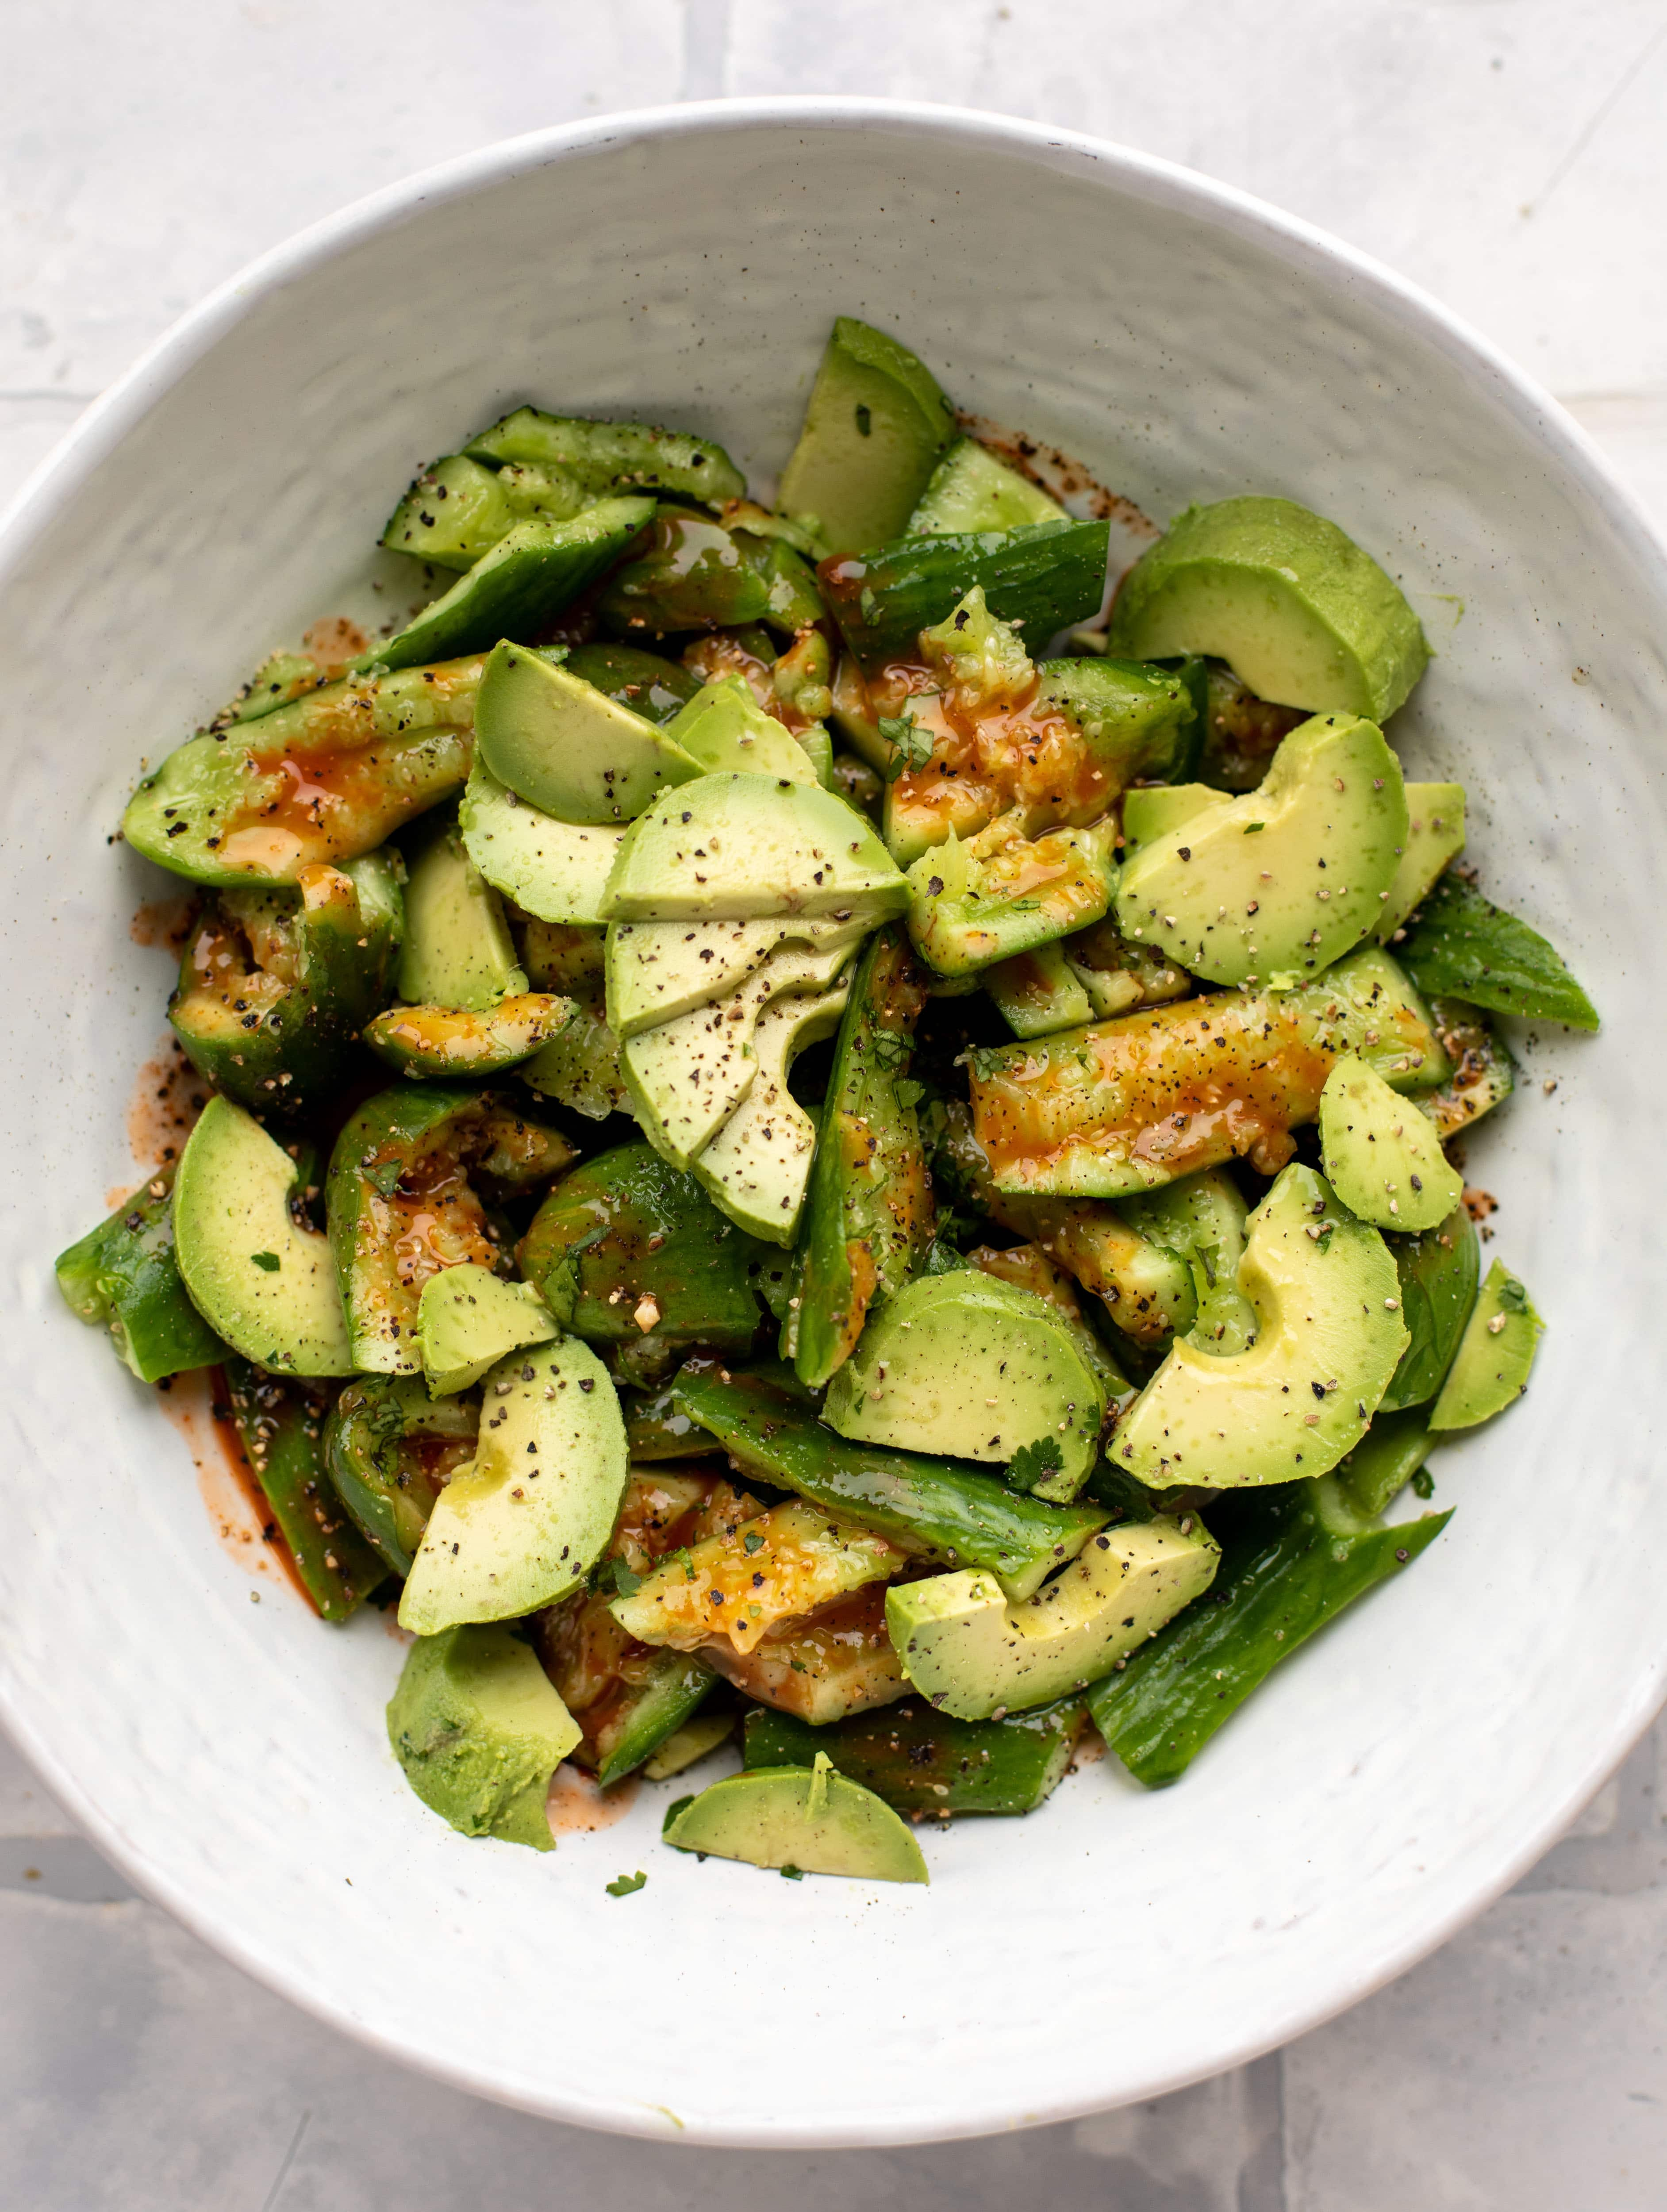 This smashed buffalo cucumber salad is filled with tons of buffalo wing flavor! Avocado, blue cheese, peanuts and lime juice make this irresistible.